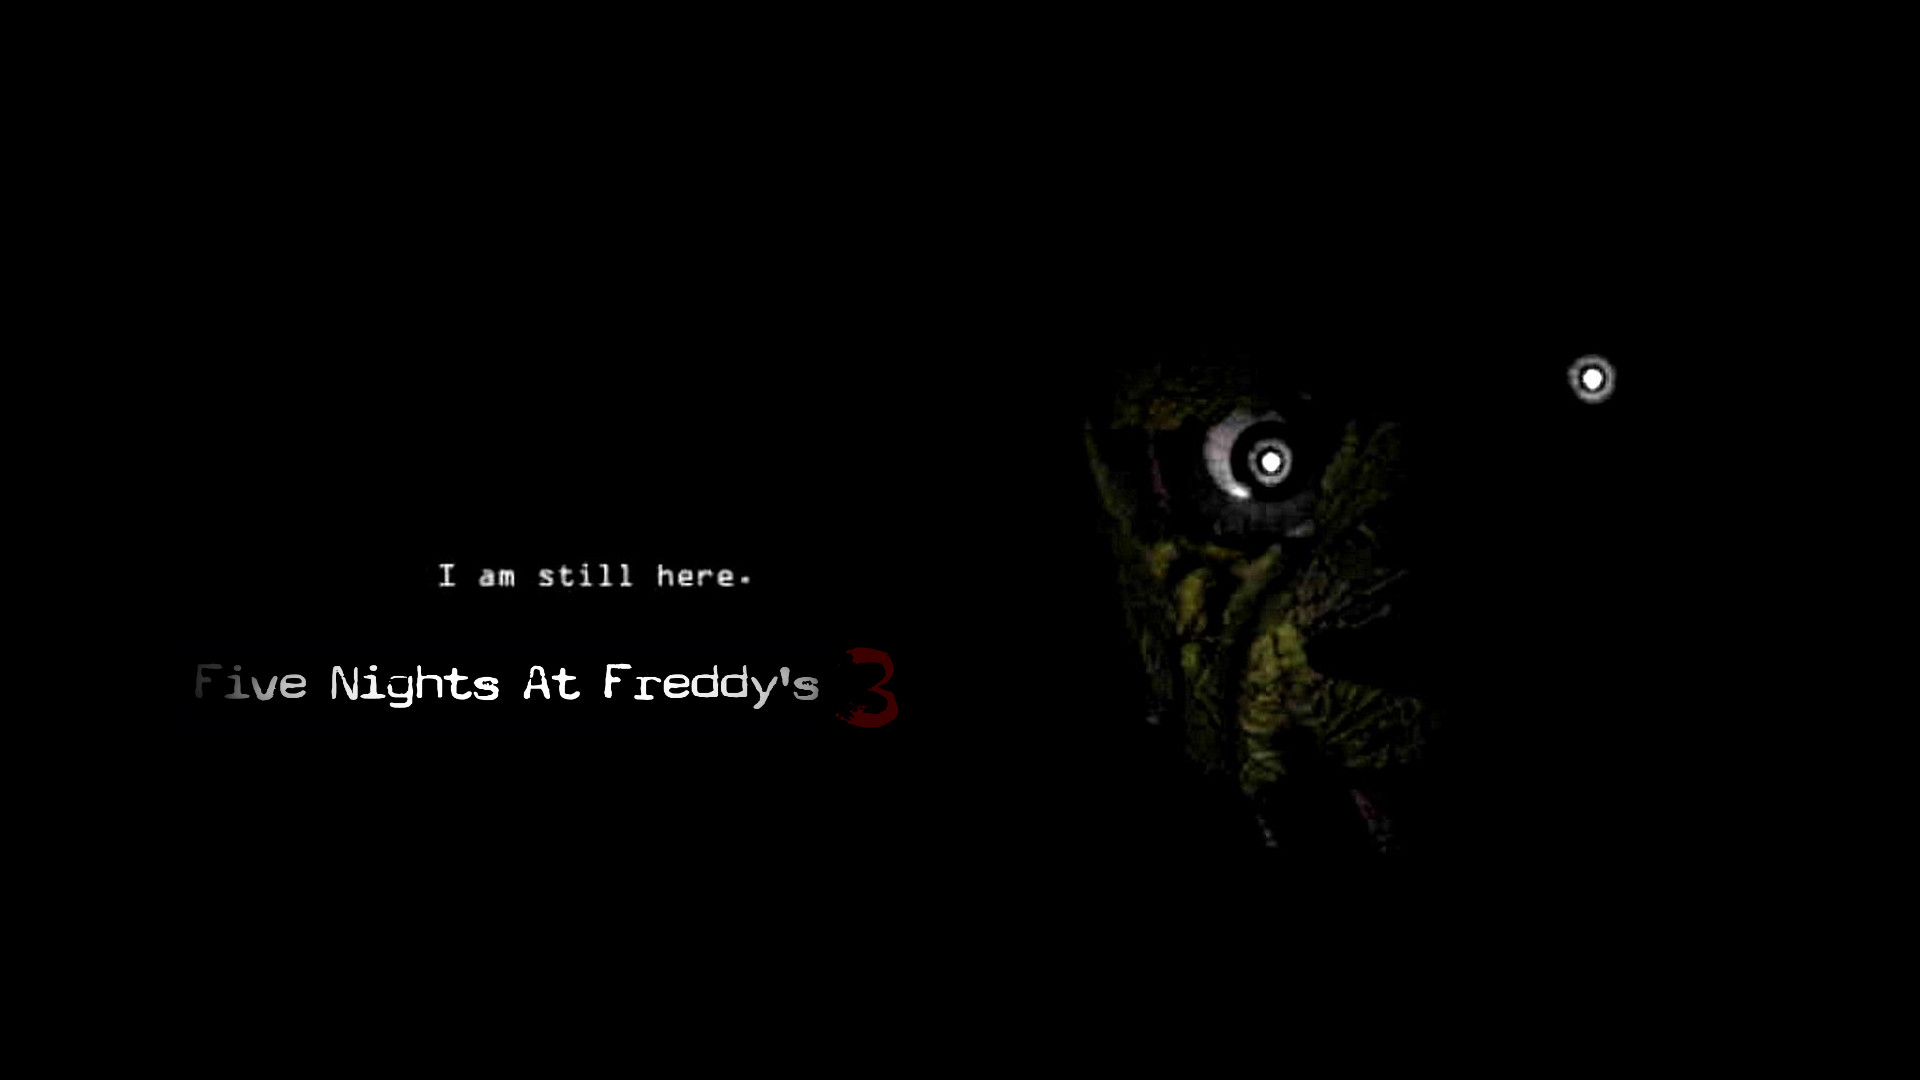 … Five Nights At Freddy's 3 Official Poster by ProfessorAdagio